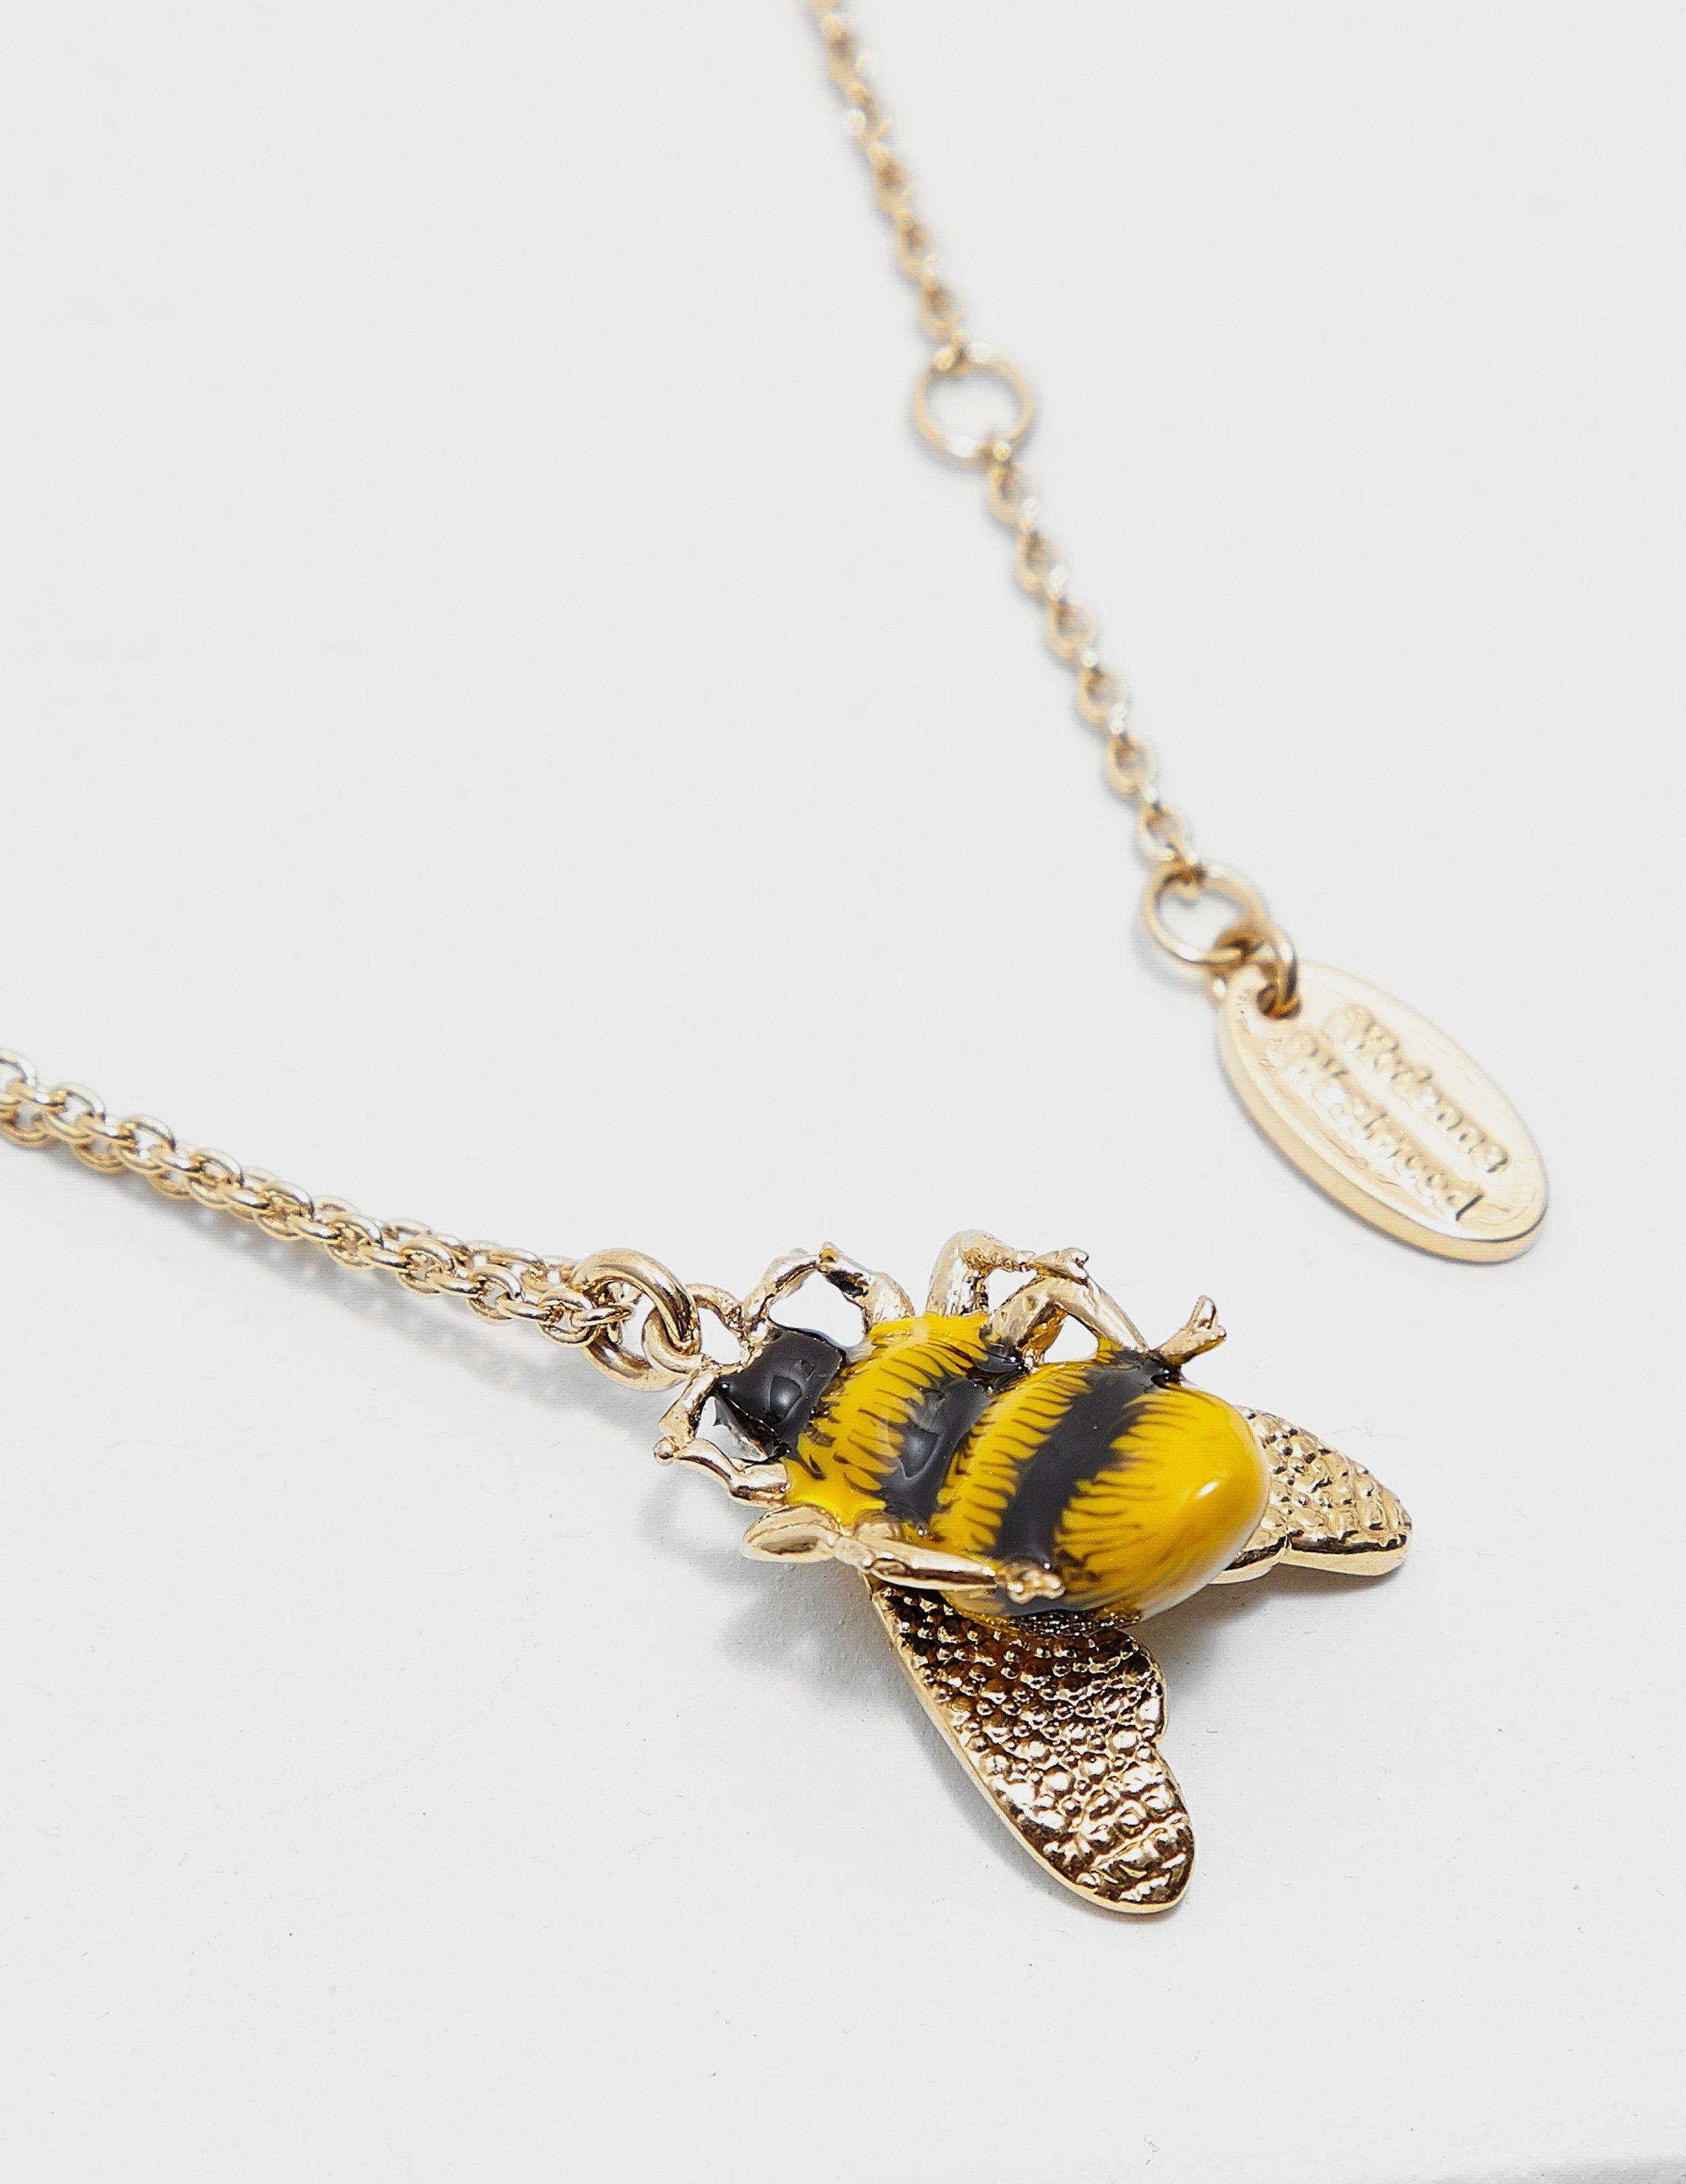 fullscreen merveilles lyst bee le yellow view des necklace marche gold gucci honey pendant jewelry